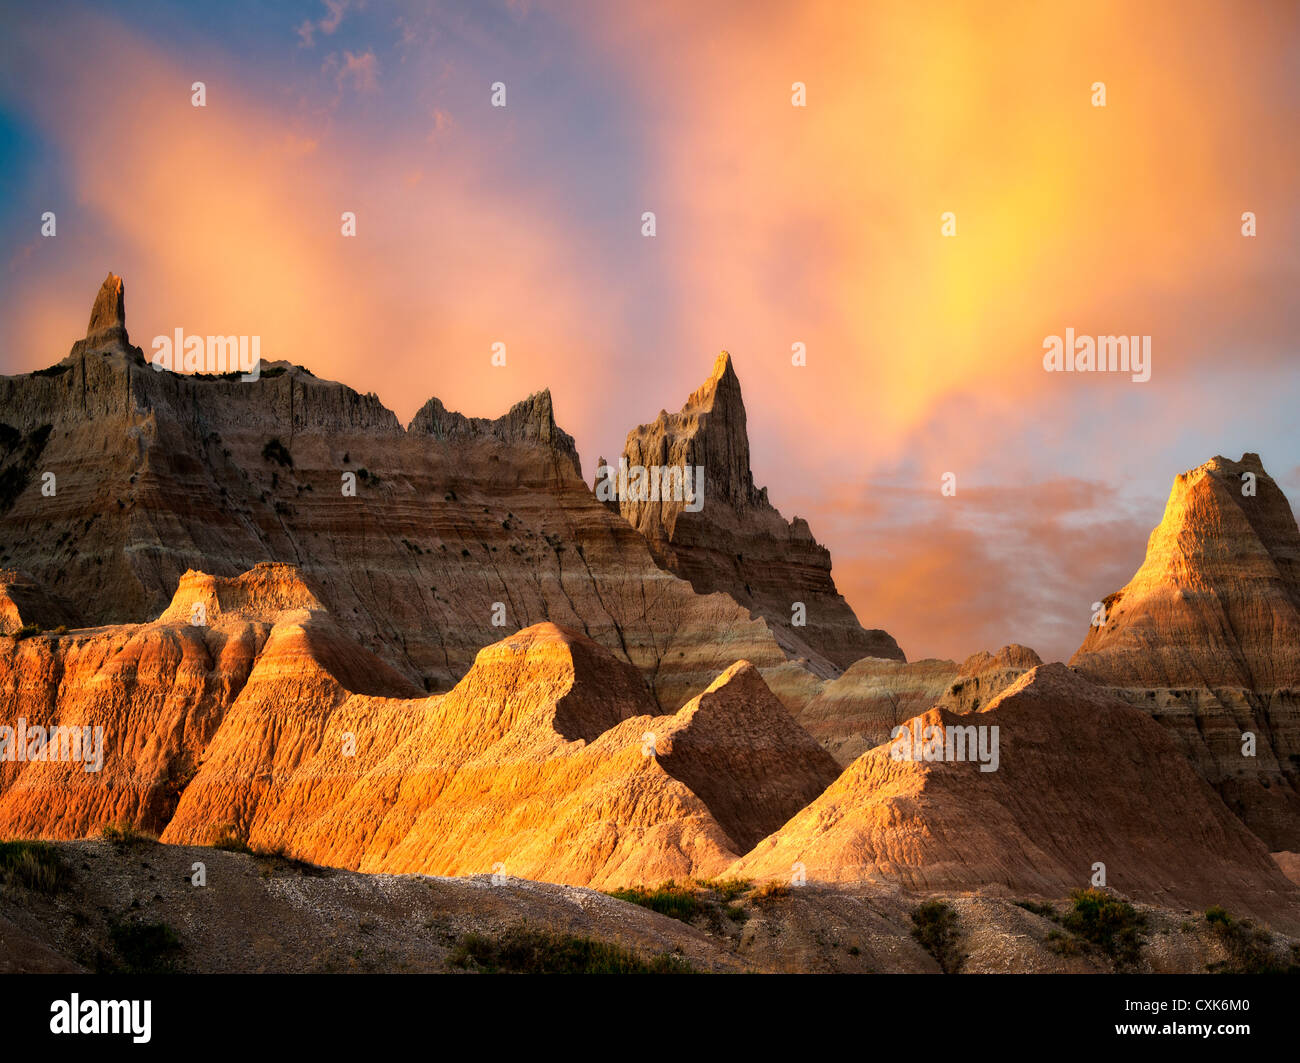 Eroded rock formations in Badlands National Park, South Dakota. - Stock Image